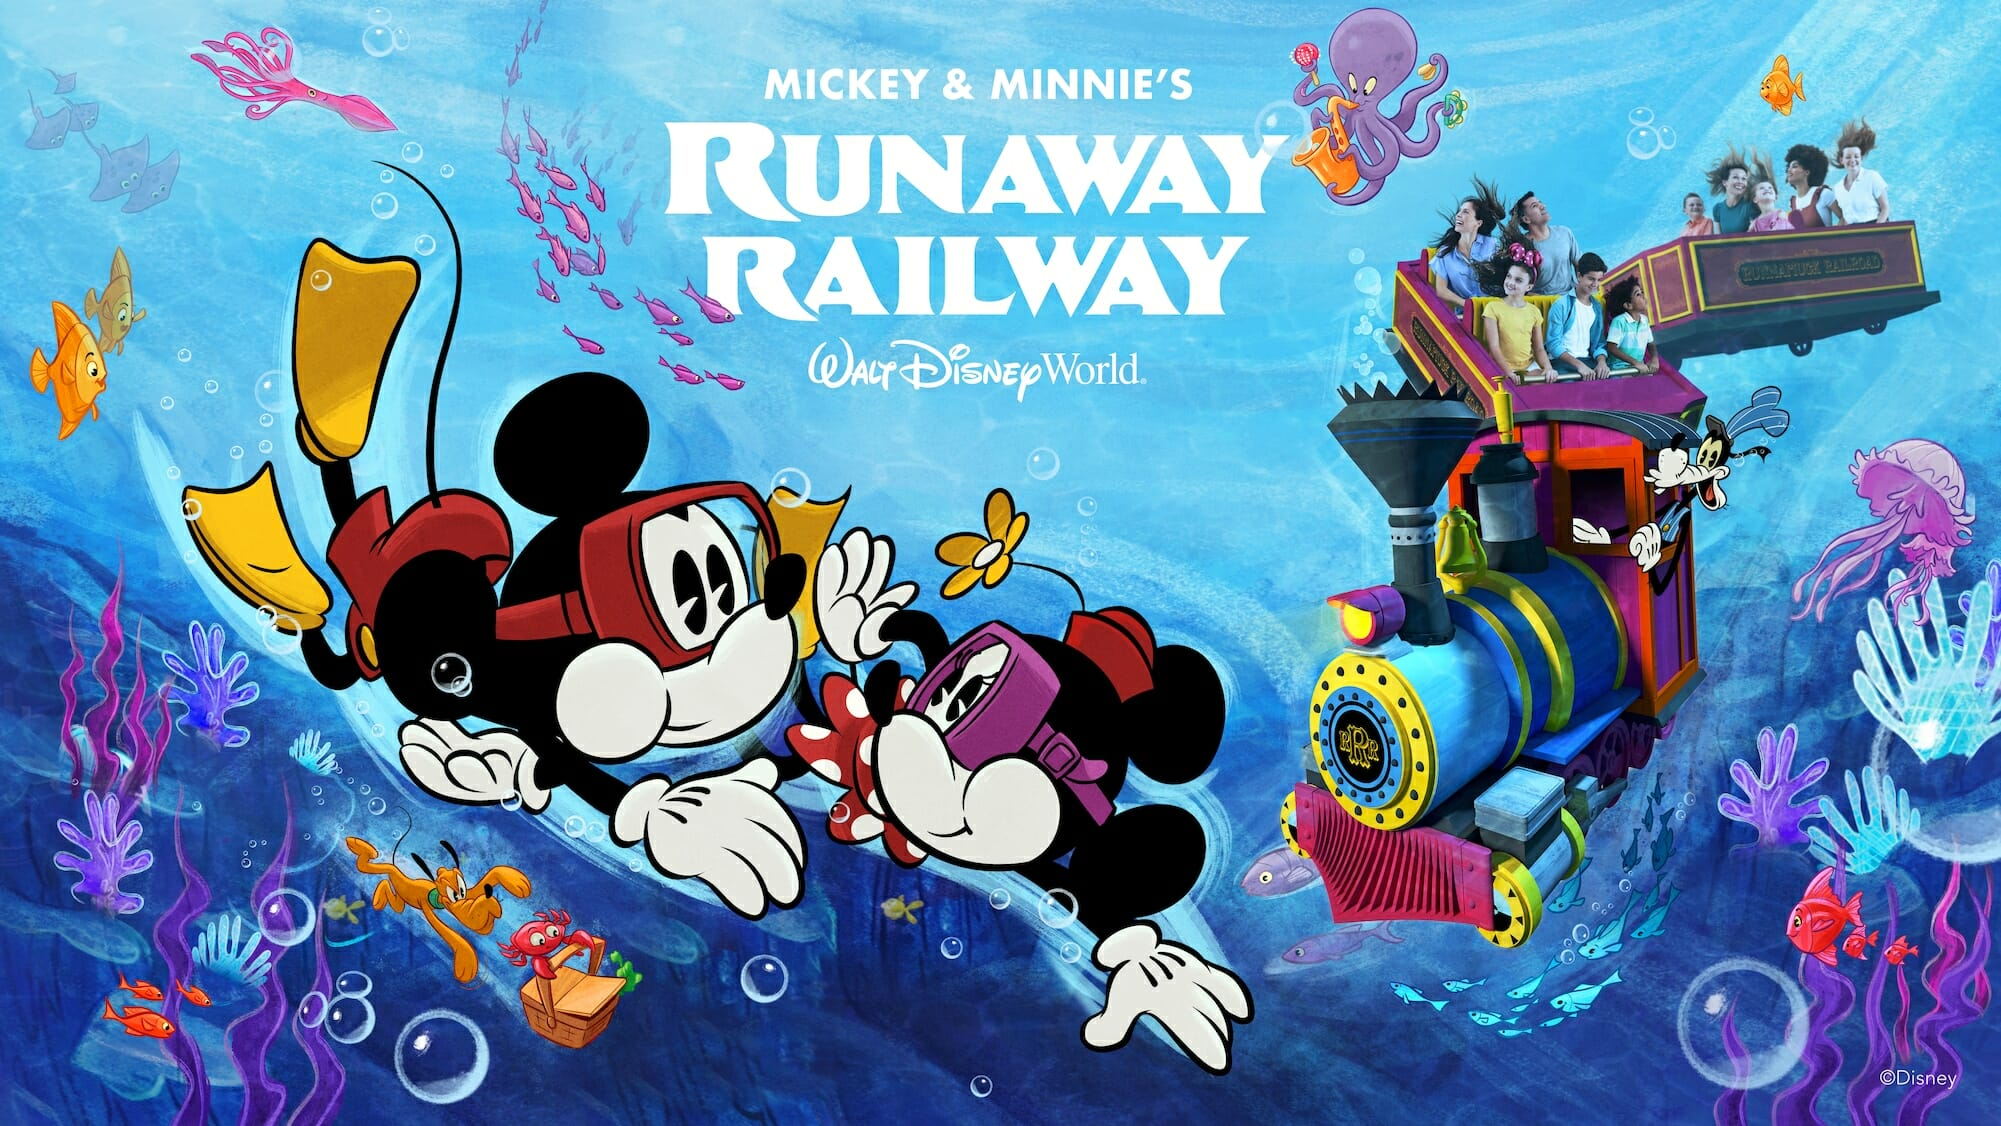 FastPass Has Opened Up for Mickey and Minnie's Runaway Railway